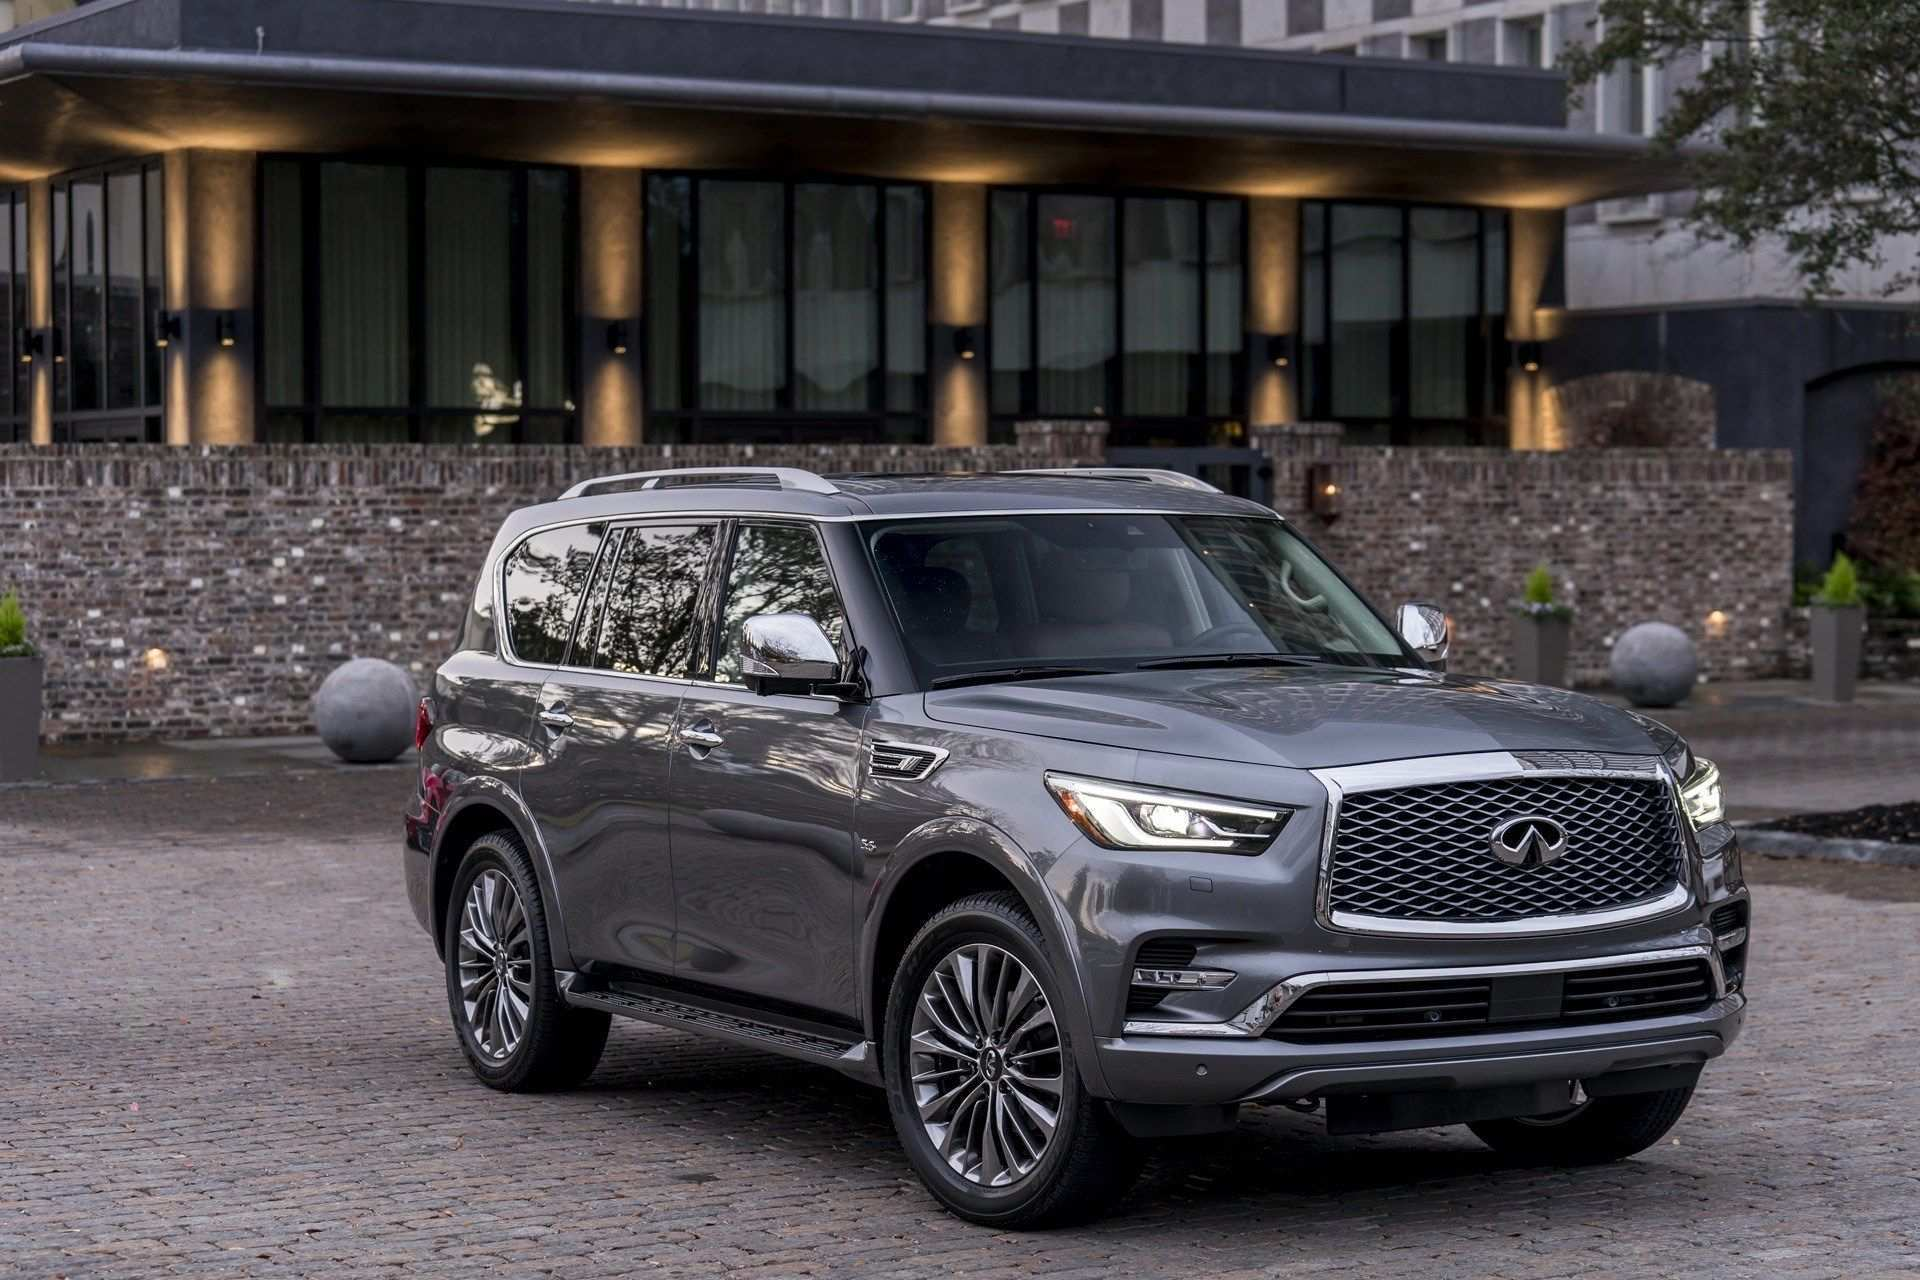 64 Great 2020 Infiniti Qx80 New Concept Speed Test for 2020 Infiniti Qx80 New Concept